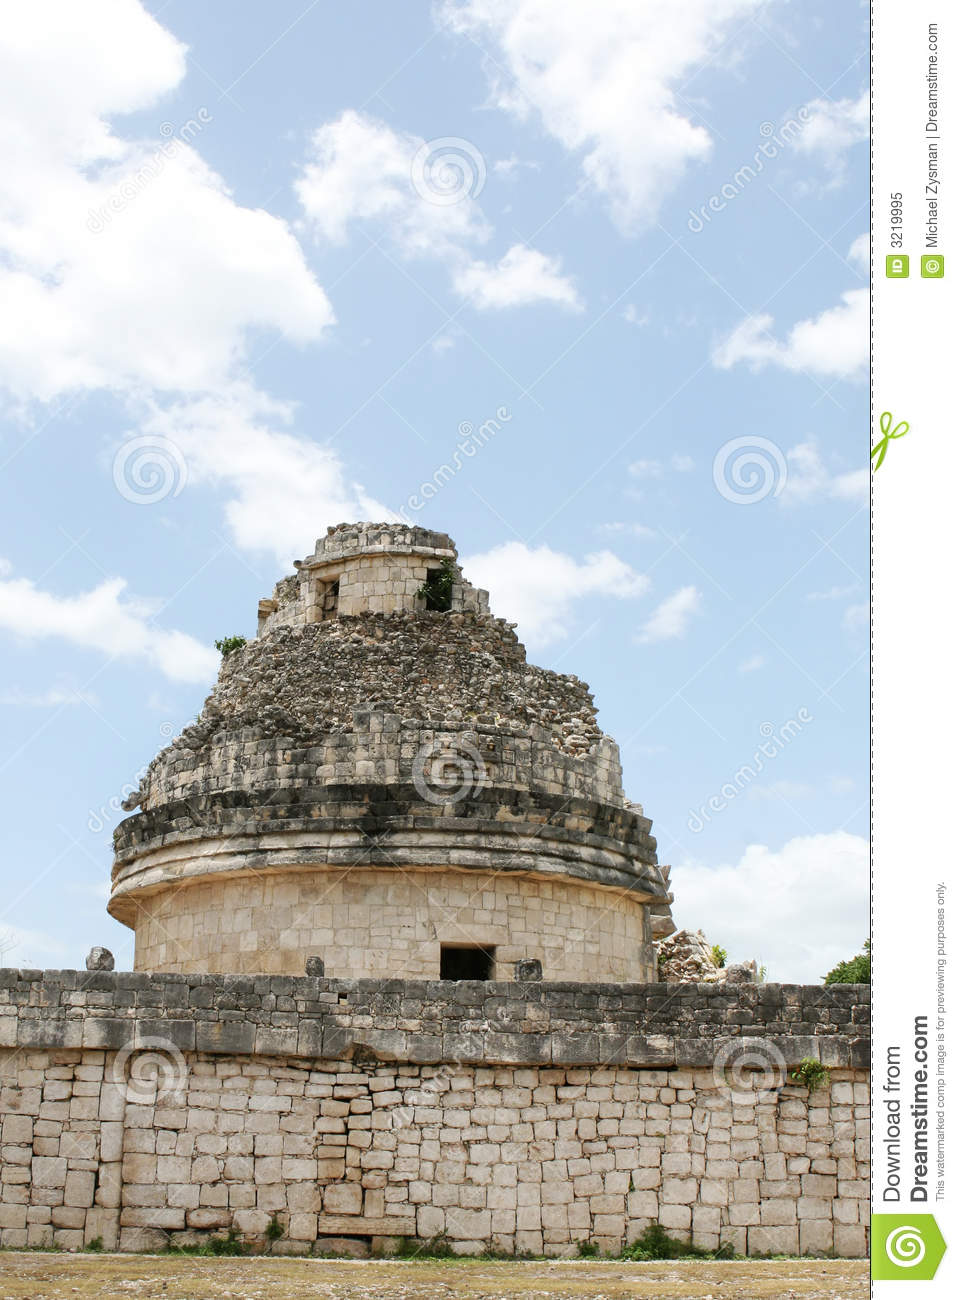 mayan knowledge of astronomy - photo #14